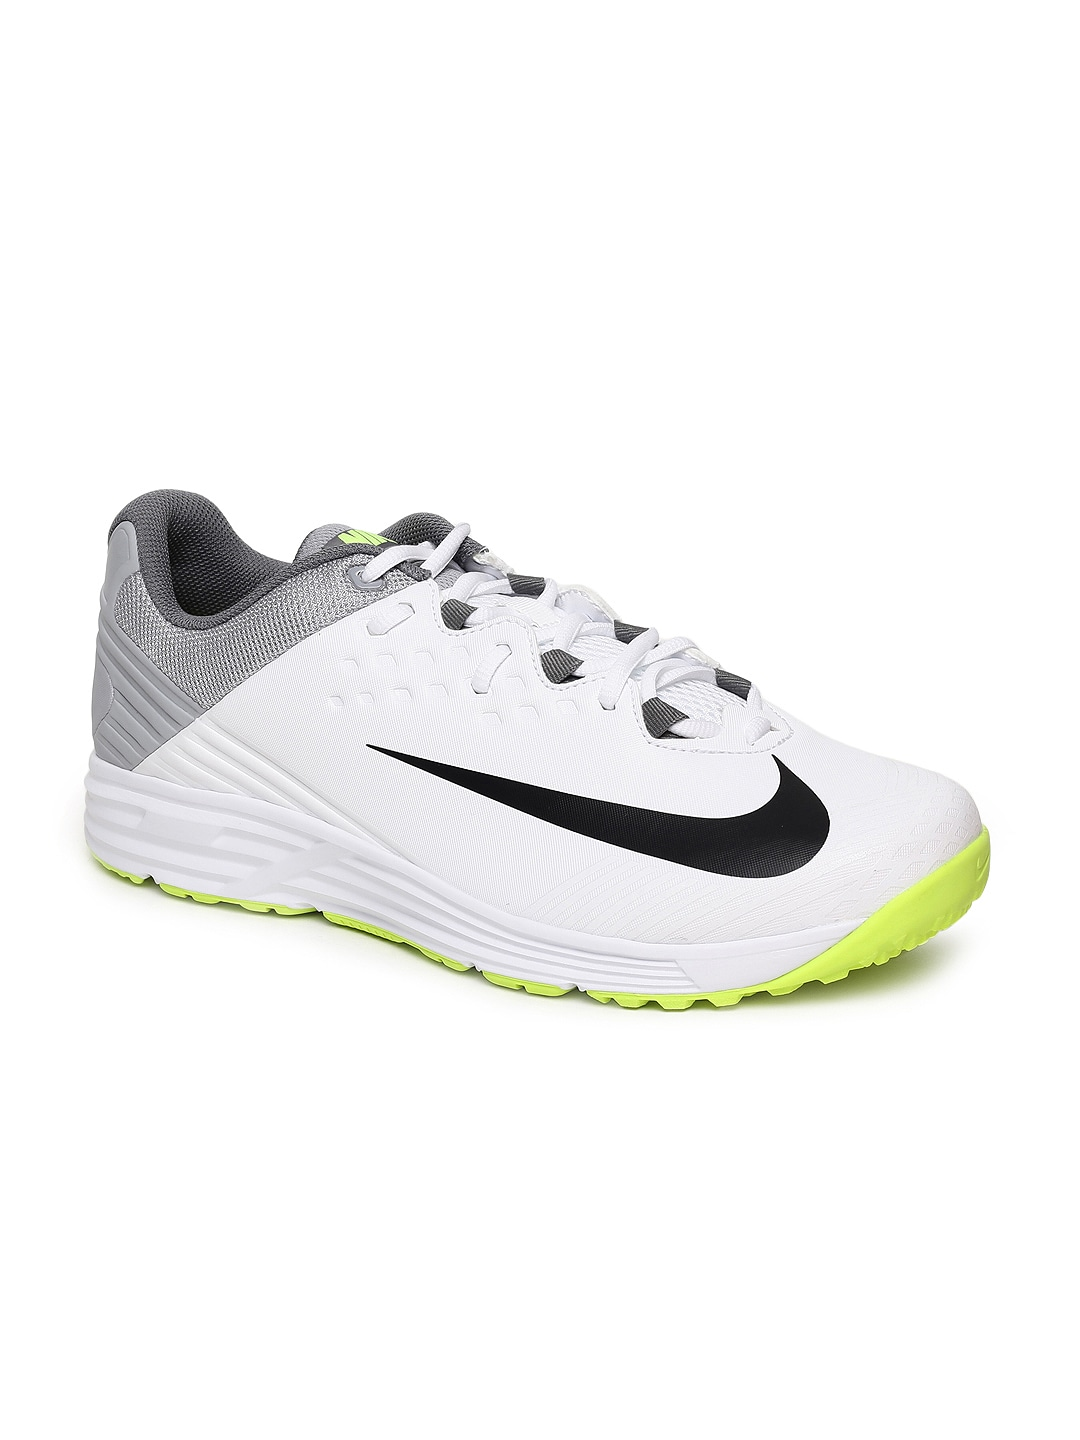 ba40ae1f91c Cricket Items - Buy Cricket Shoes   Jerseys Online in India